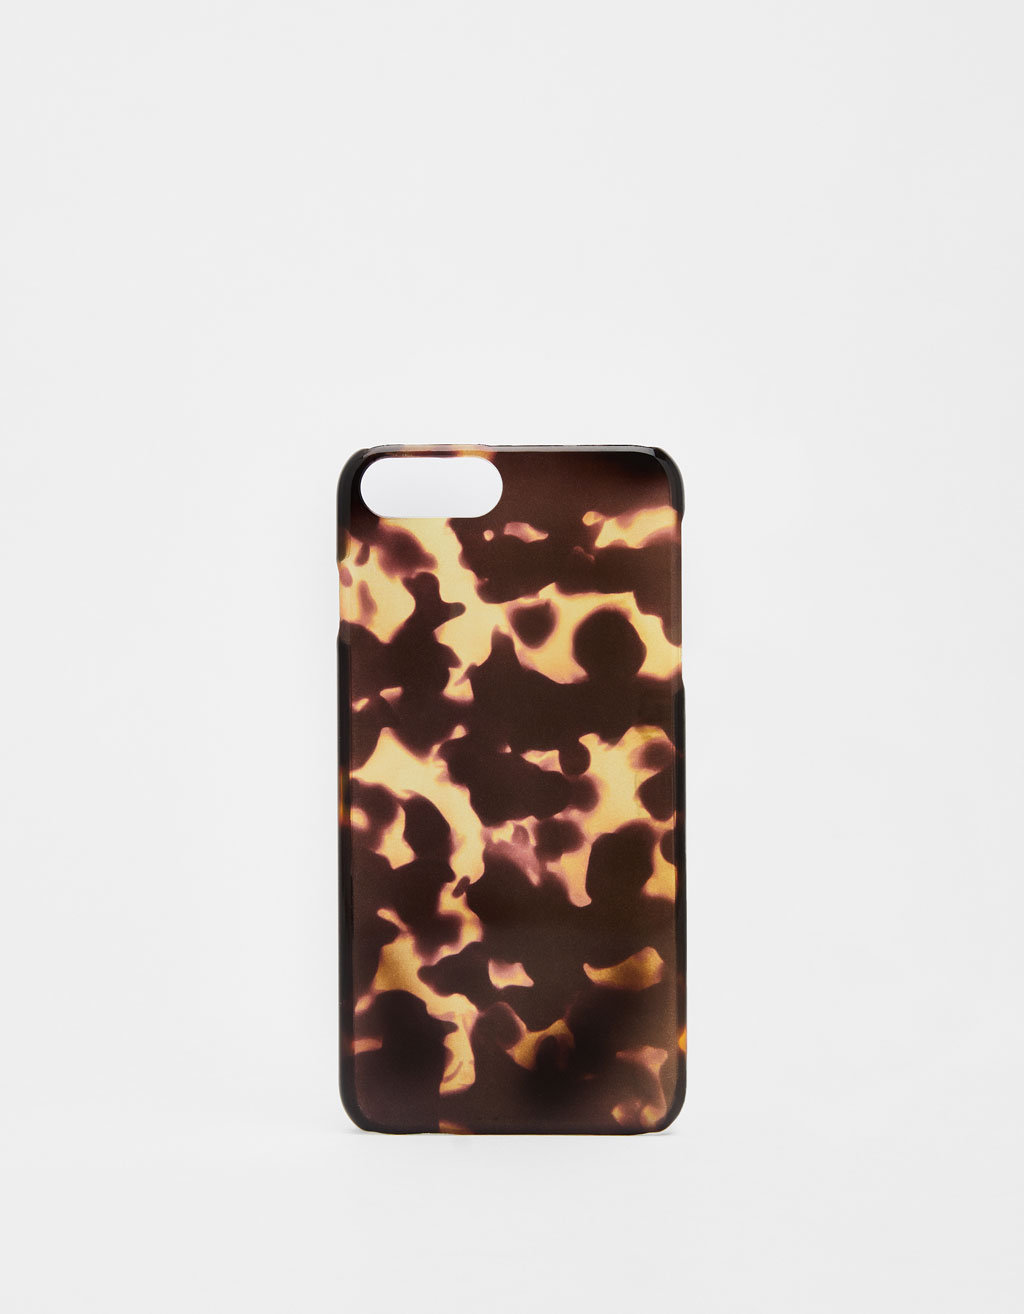 Tortoiseshell-effect iPhone 6 Plus/7 Plus/8 Plus case